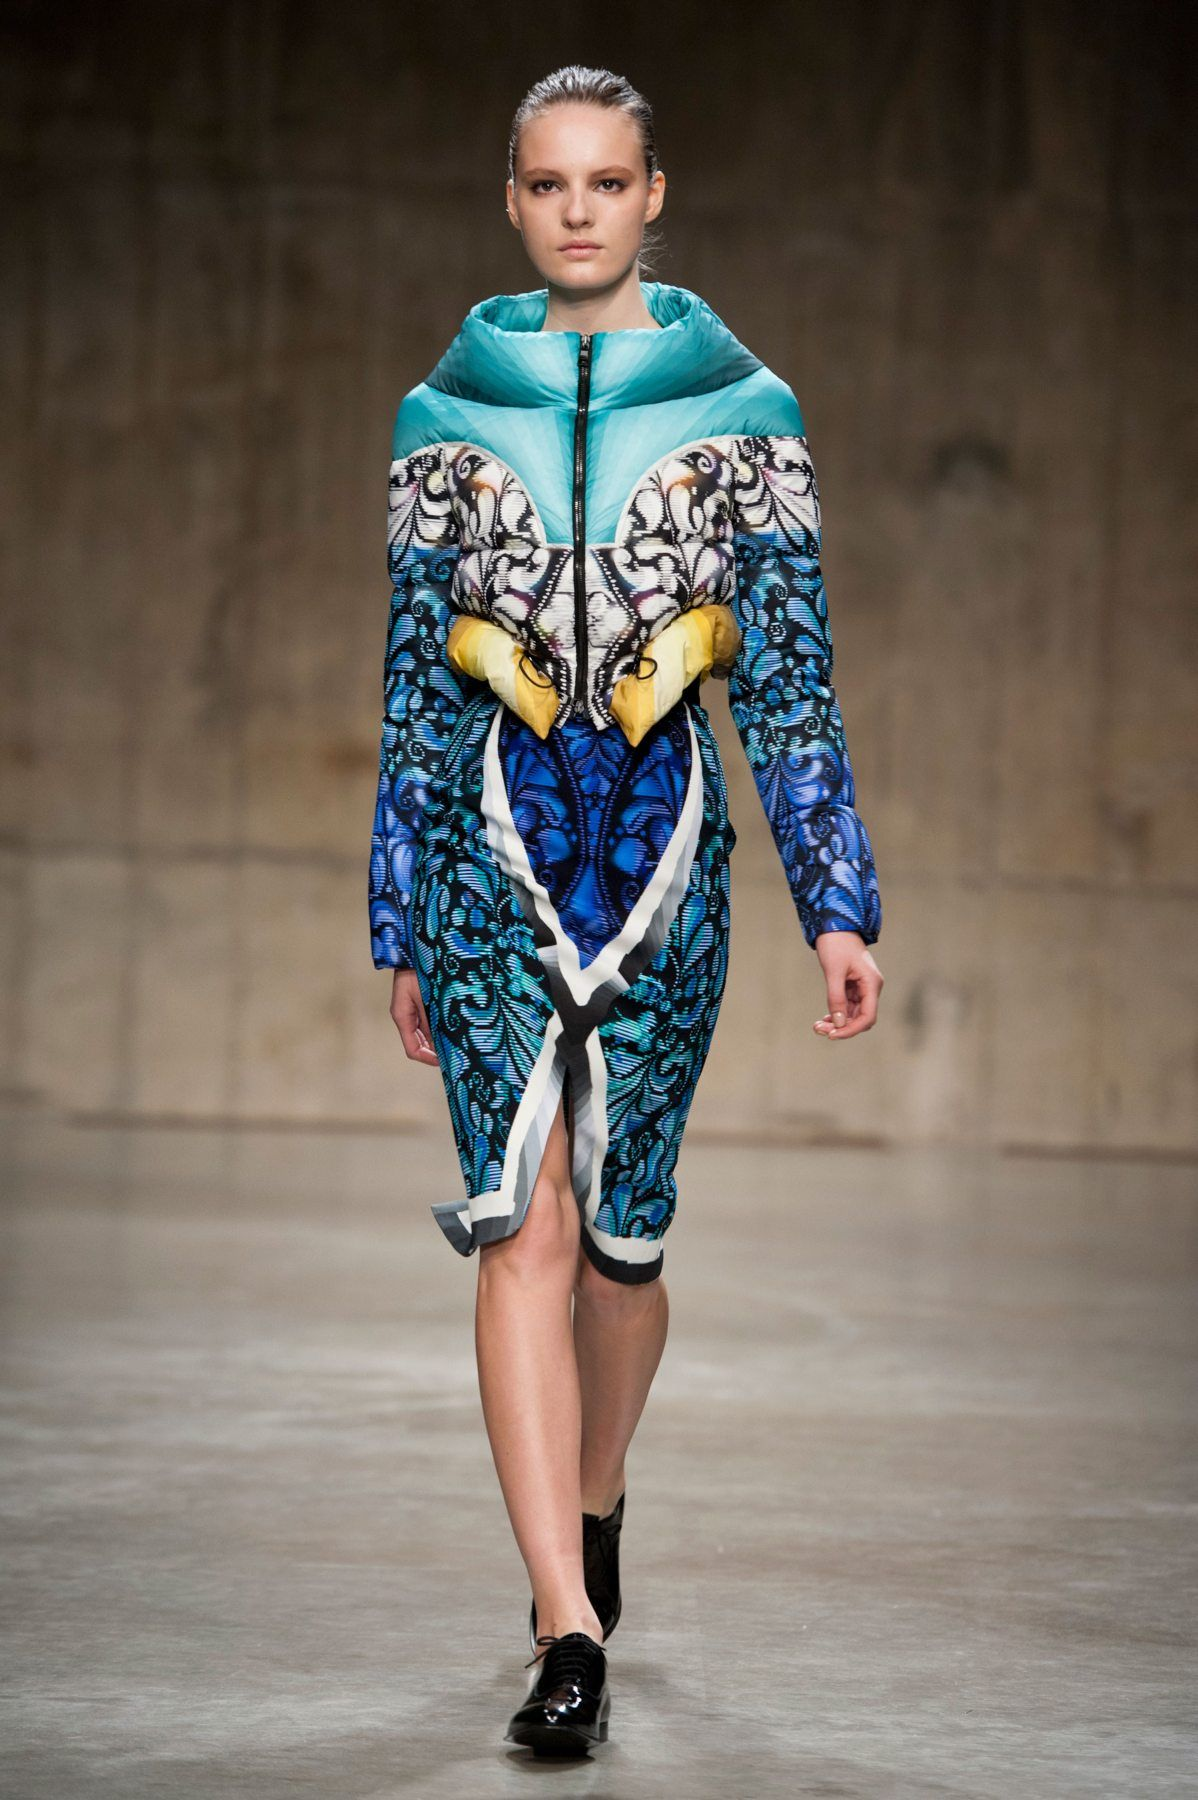 Peter Pilotto | Londres | Inverno 2013 RTW